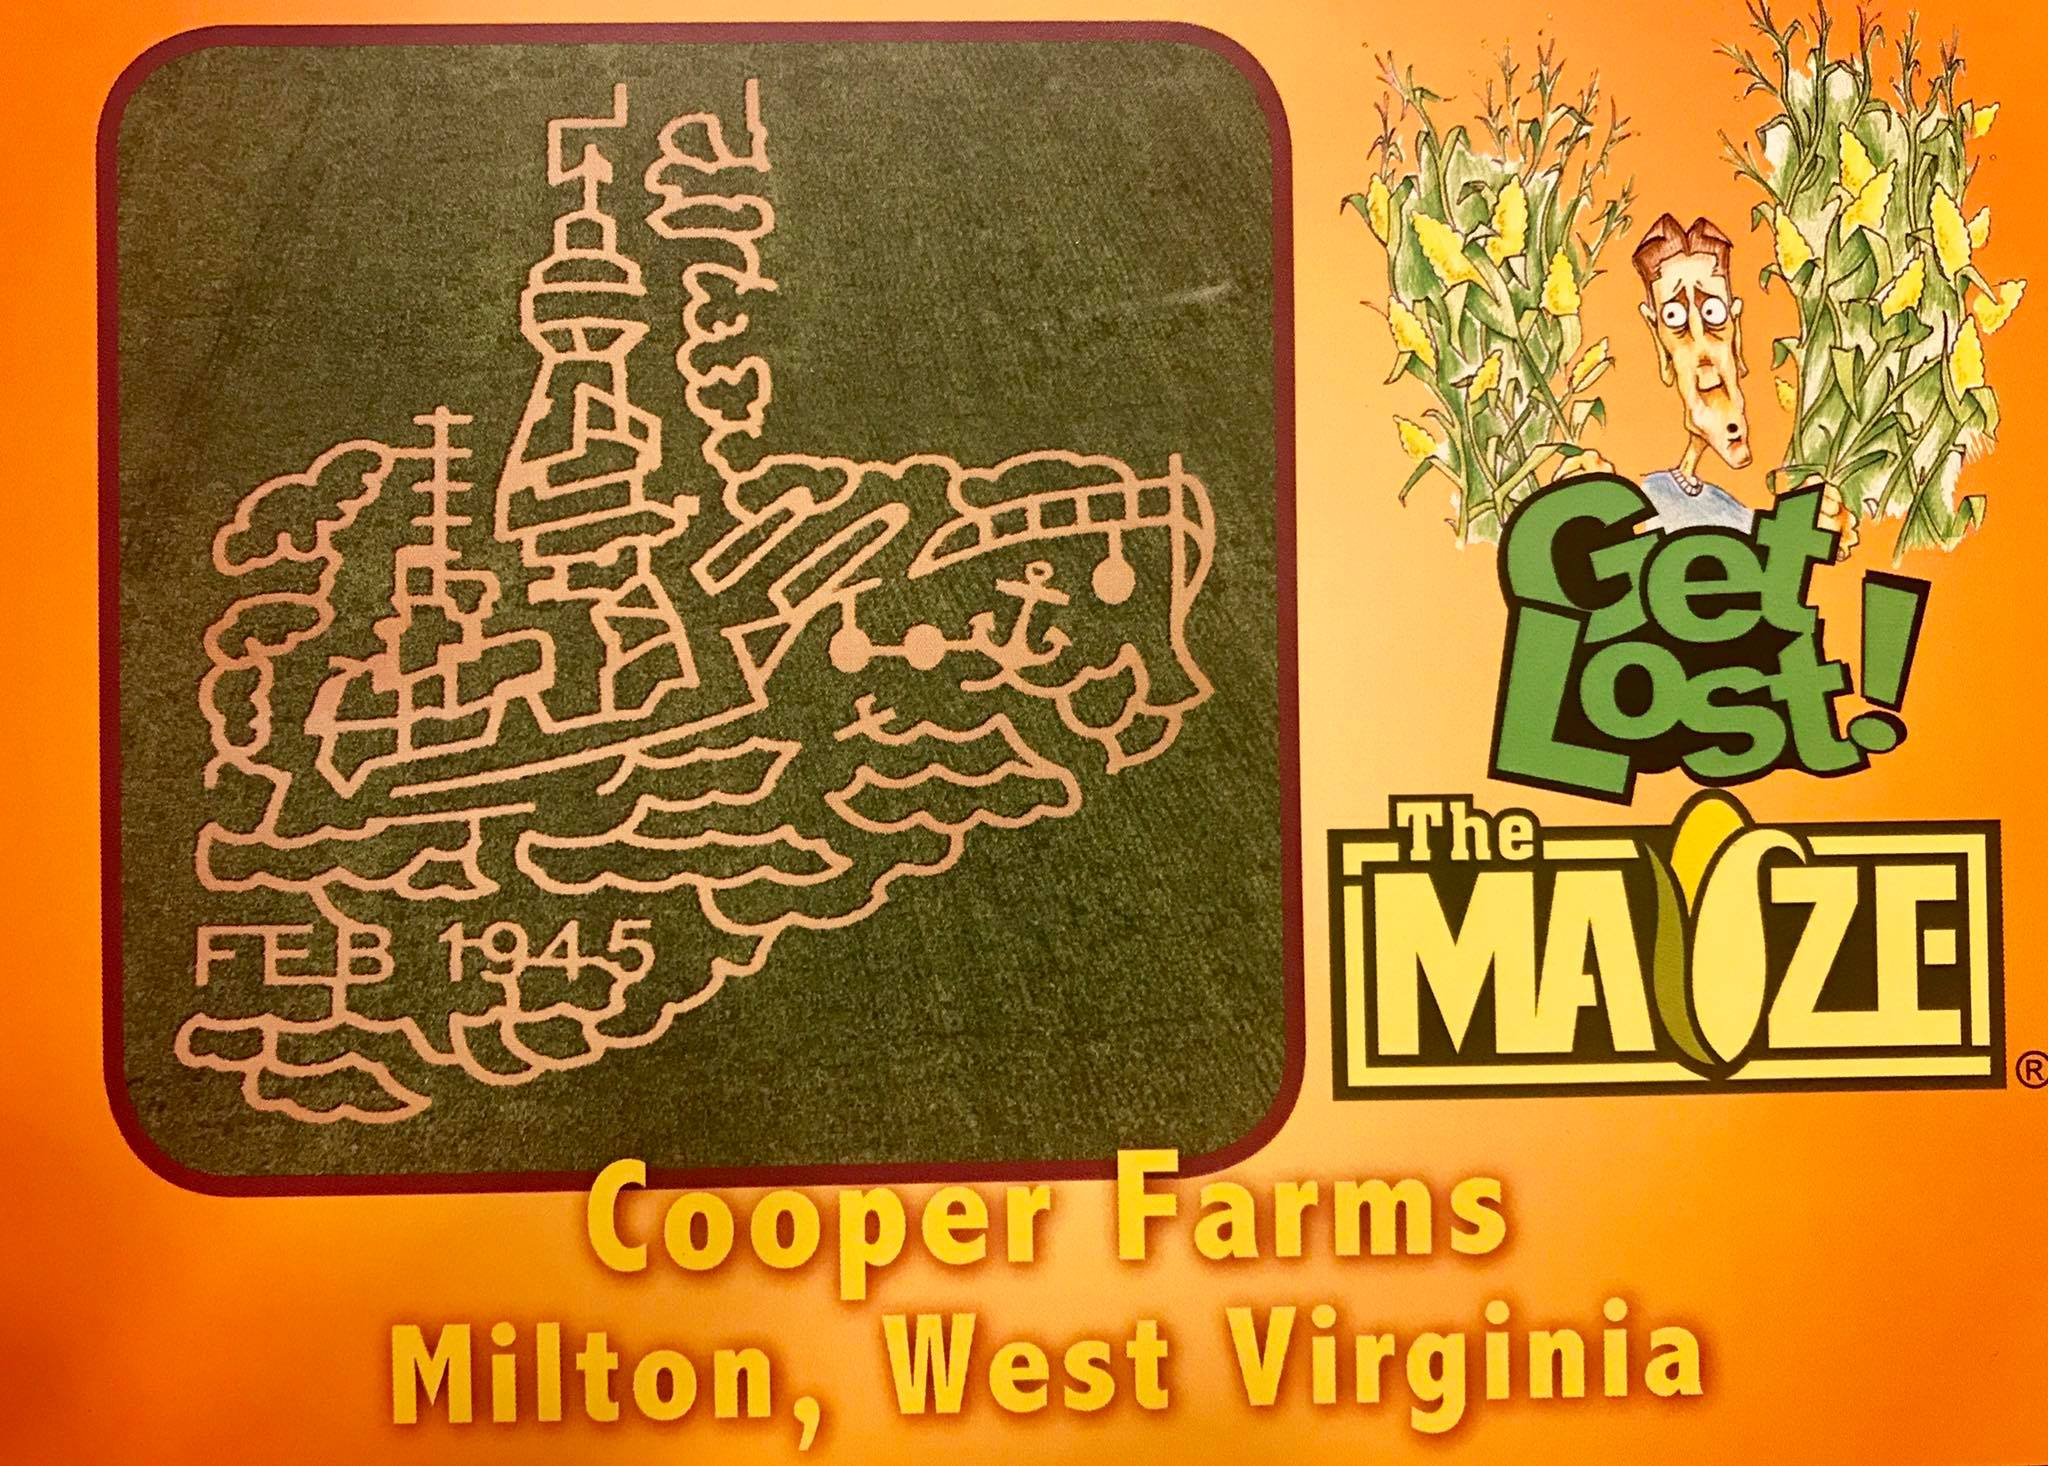 The Maze at Cooper Family Farms